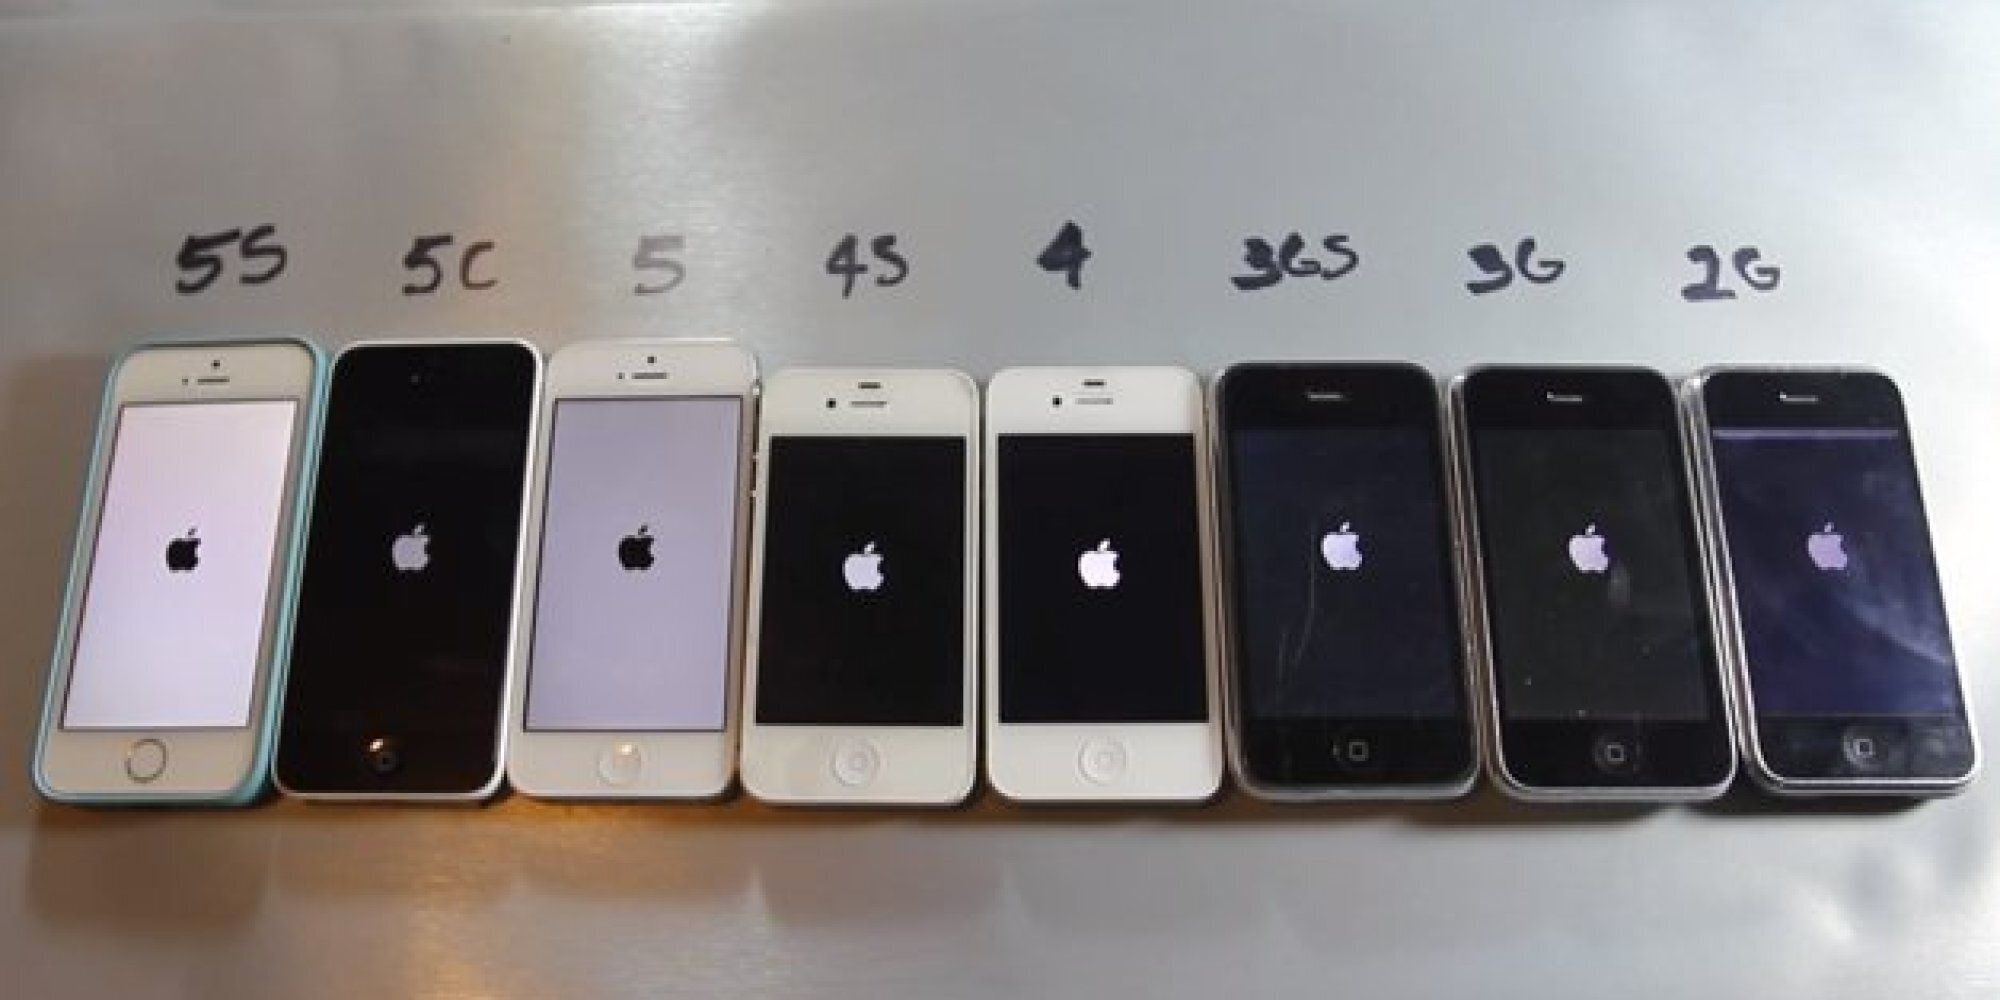 Iphone Maße Every Iphone Compared In Mass Video Test | Huffpost Uk